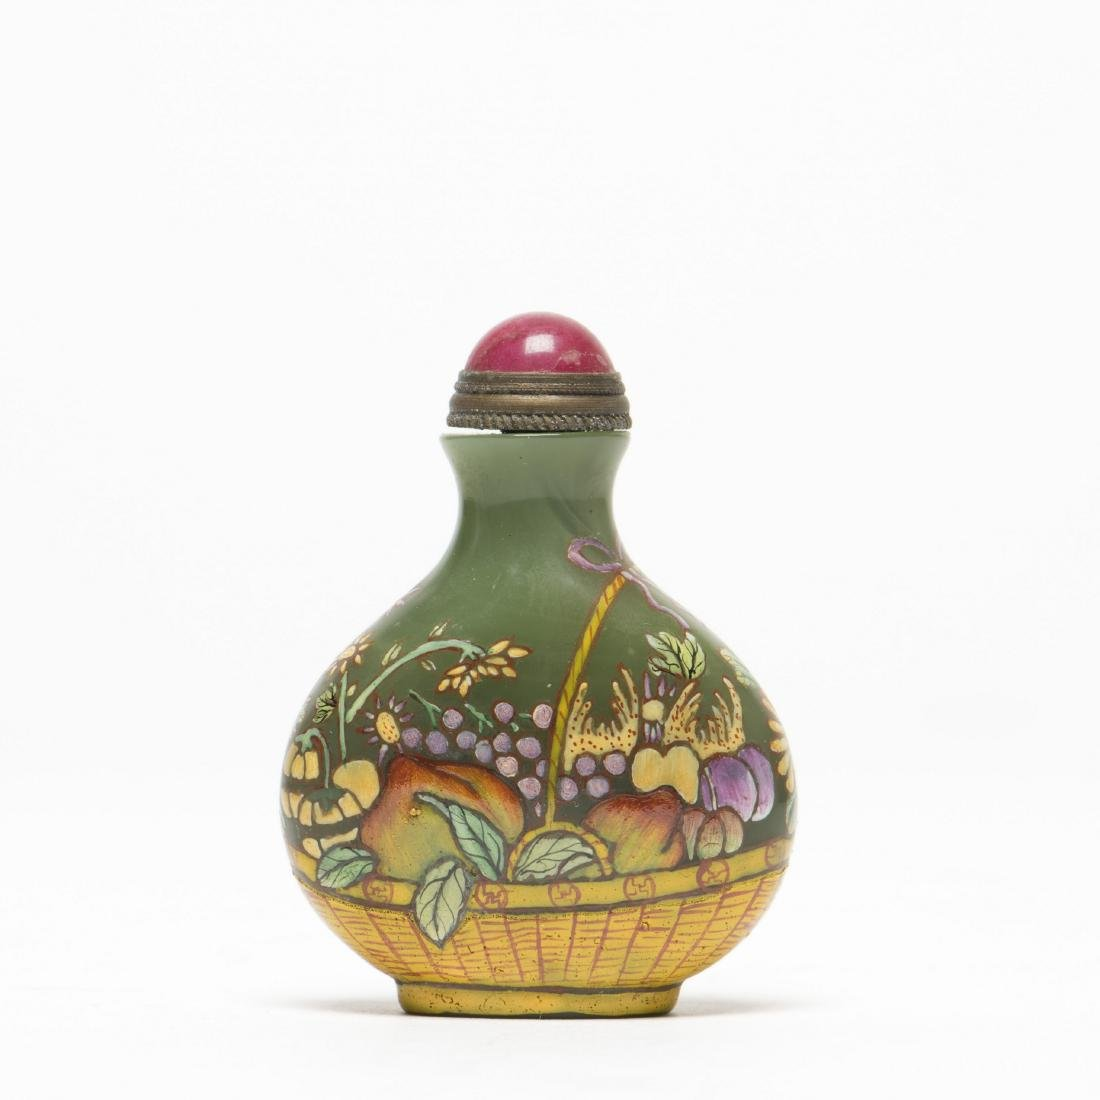 A FLORAL PATTERN SNUFF BOTTLE